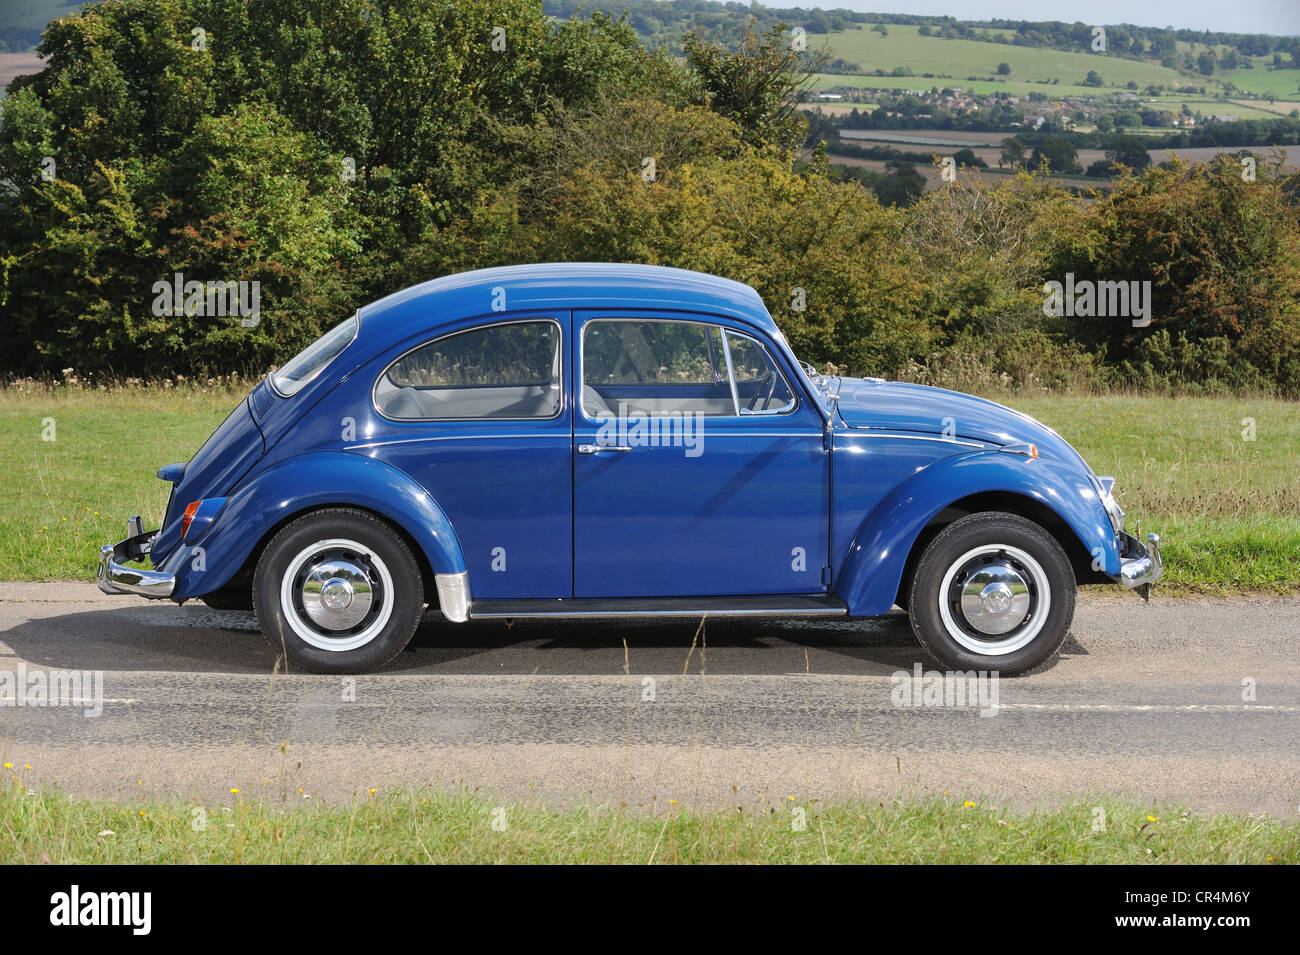 1966 VW Volkswagen Beetle classic stock air cooled bug - Stock Image